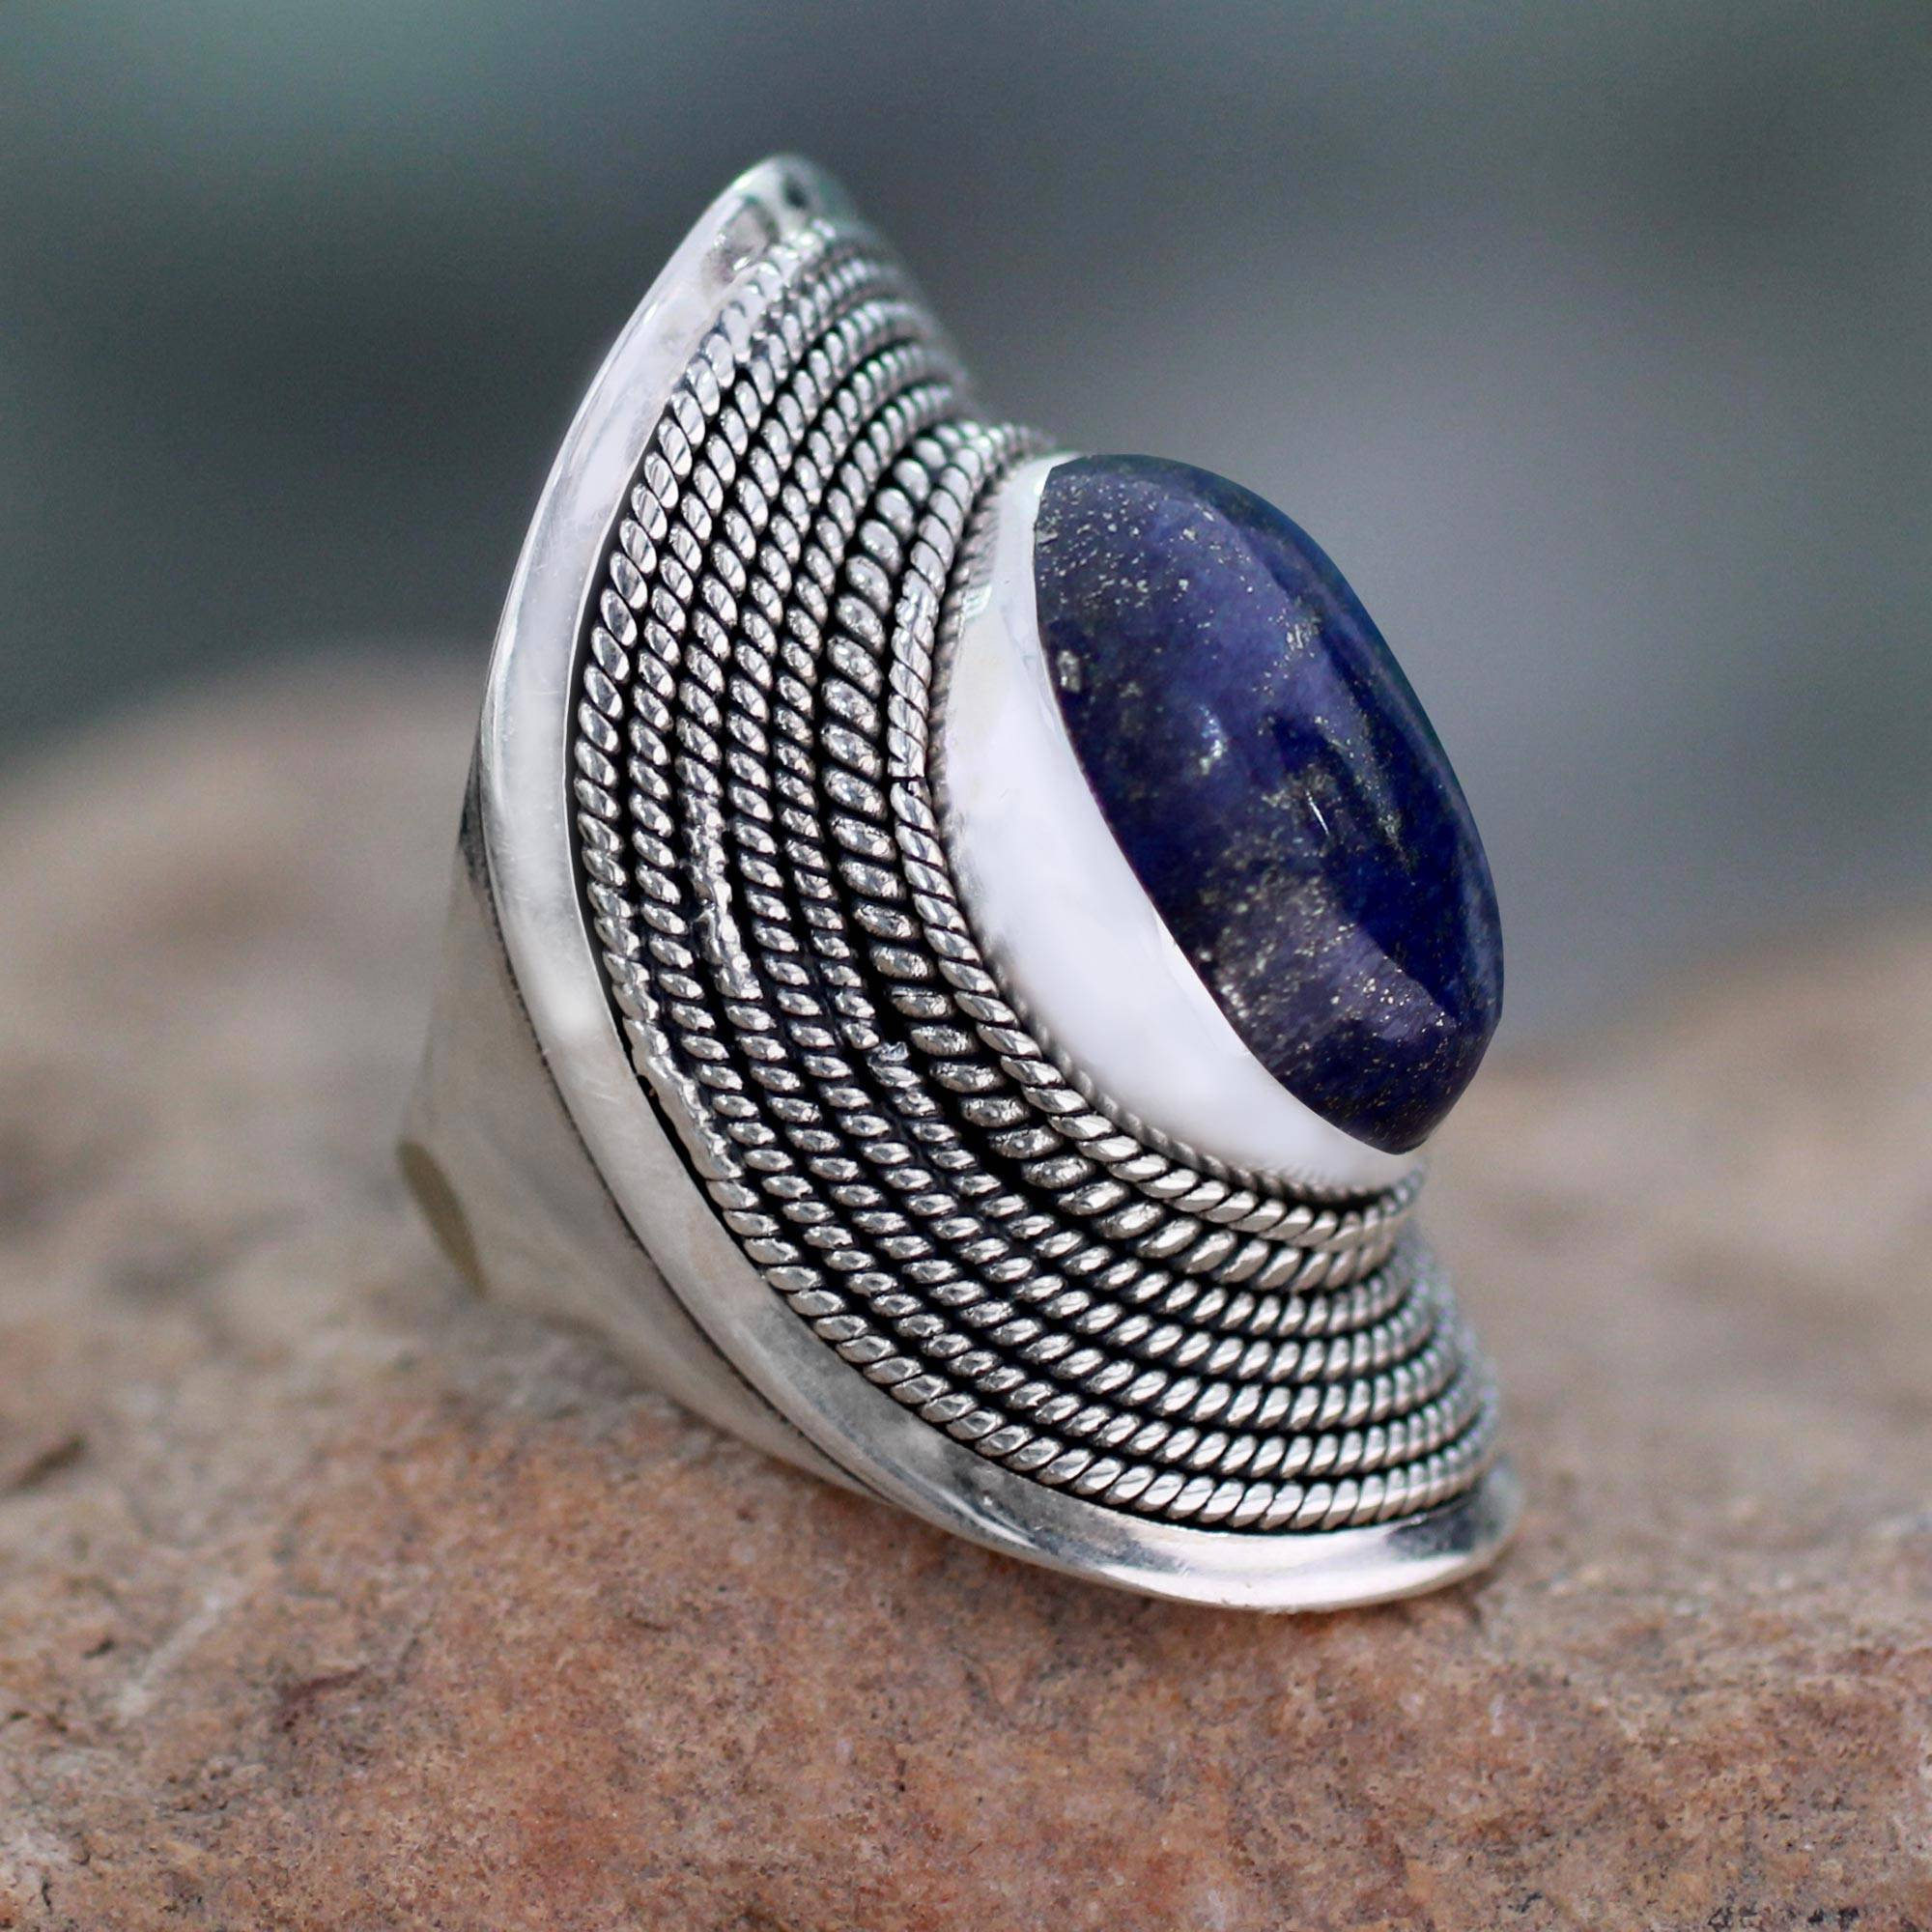 Silvestoo Jaipur Coral Lapis Lazuli /& Turquoise 925 Silver Plated Ring Sz 10 PG-117576